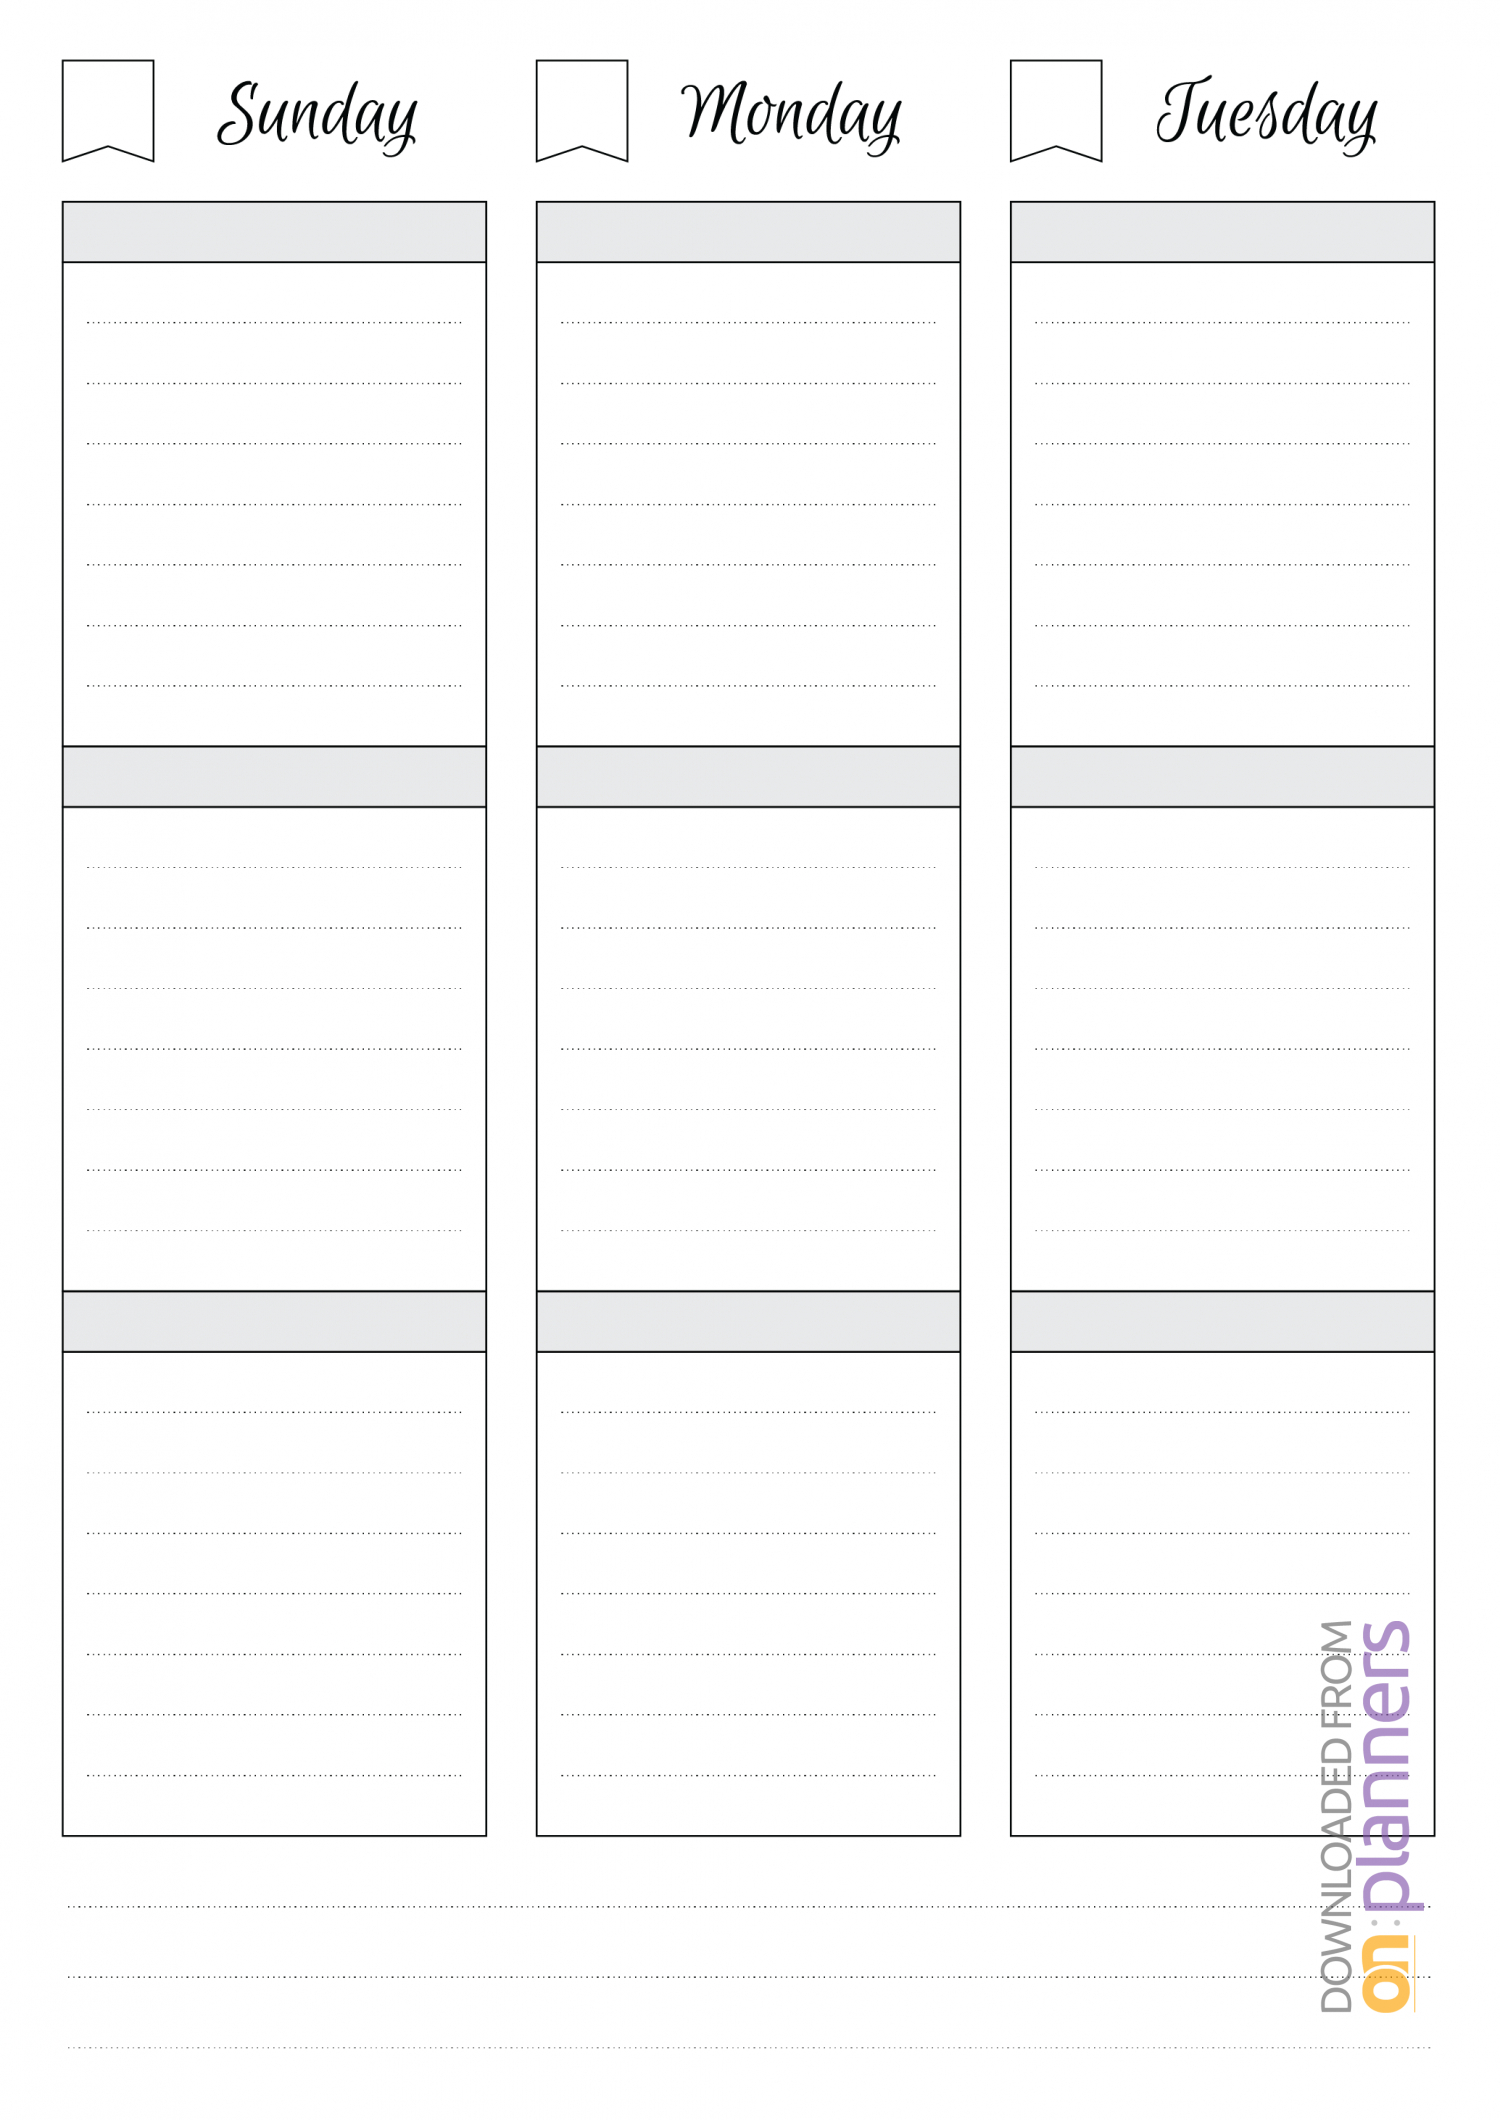 Download Printable Undated Weekly Schedule Pdf within Monday Through Saturday Schedule Template